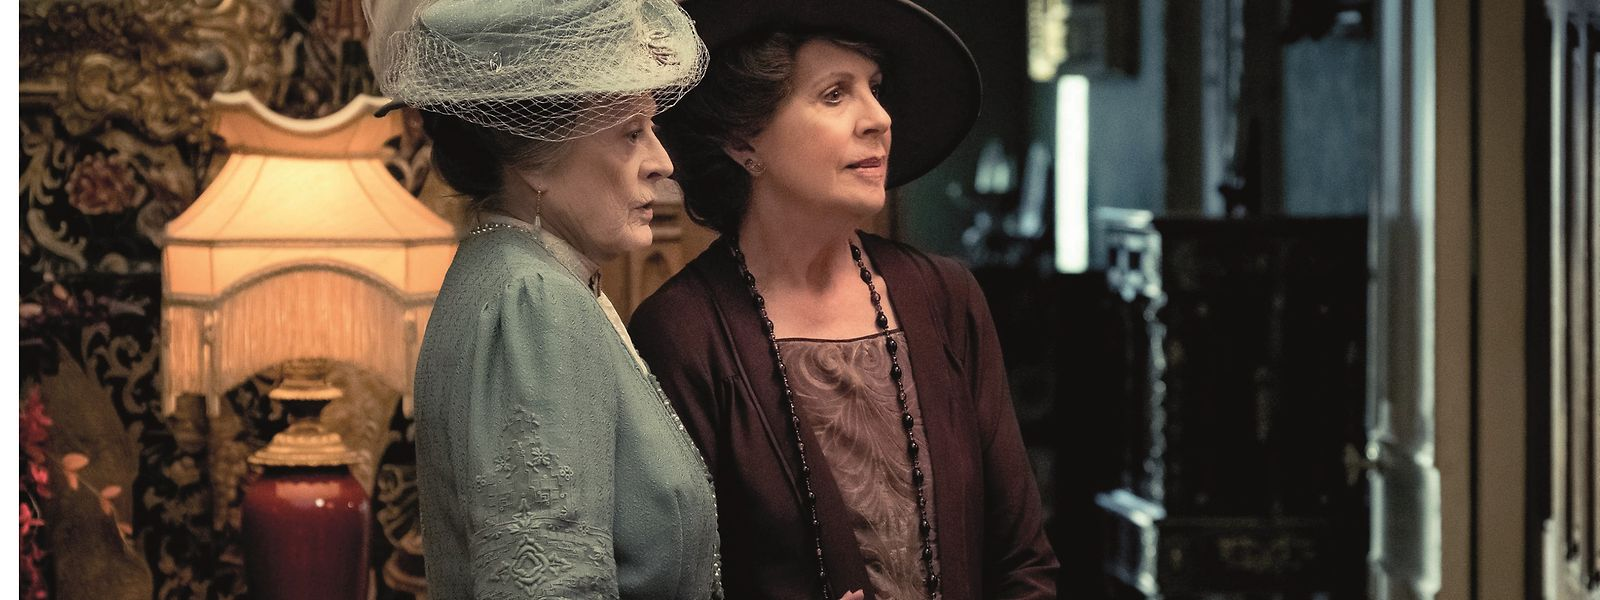 "Highlight der Filmfassung von ""Downton Abbey"" ist das Wiedersehen mit einer umwerfenden Maggie Smith (l.), als Countess of Grantham, und Penelope Wilton in der Rolle der Lady Merton."